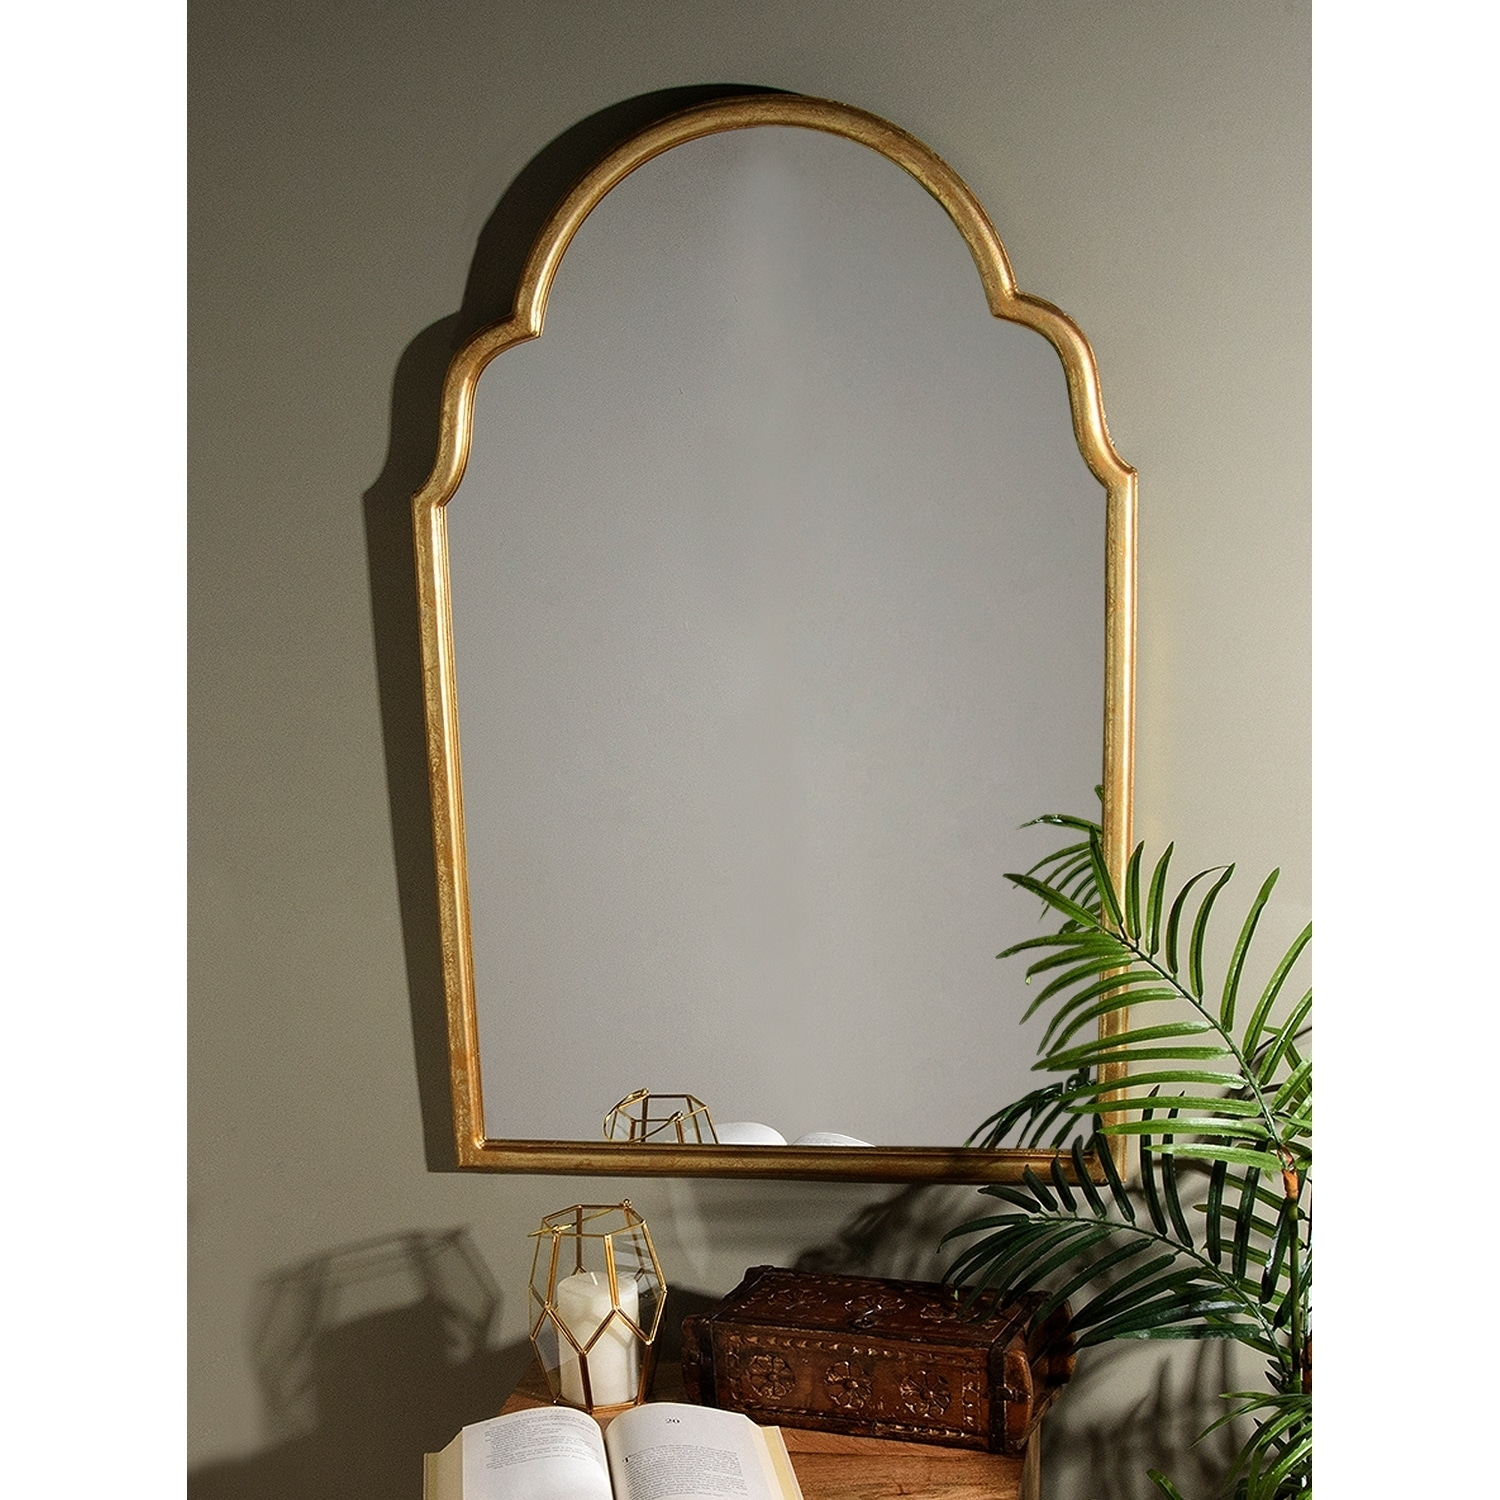 Antiques Apprehensive Antique Wooden Wall Hanging Mirror Edwardian (1901-1910) Great Vintage Condition Online Discount